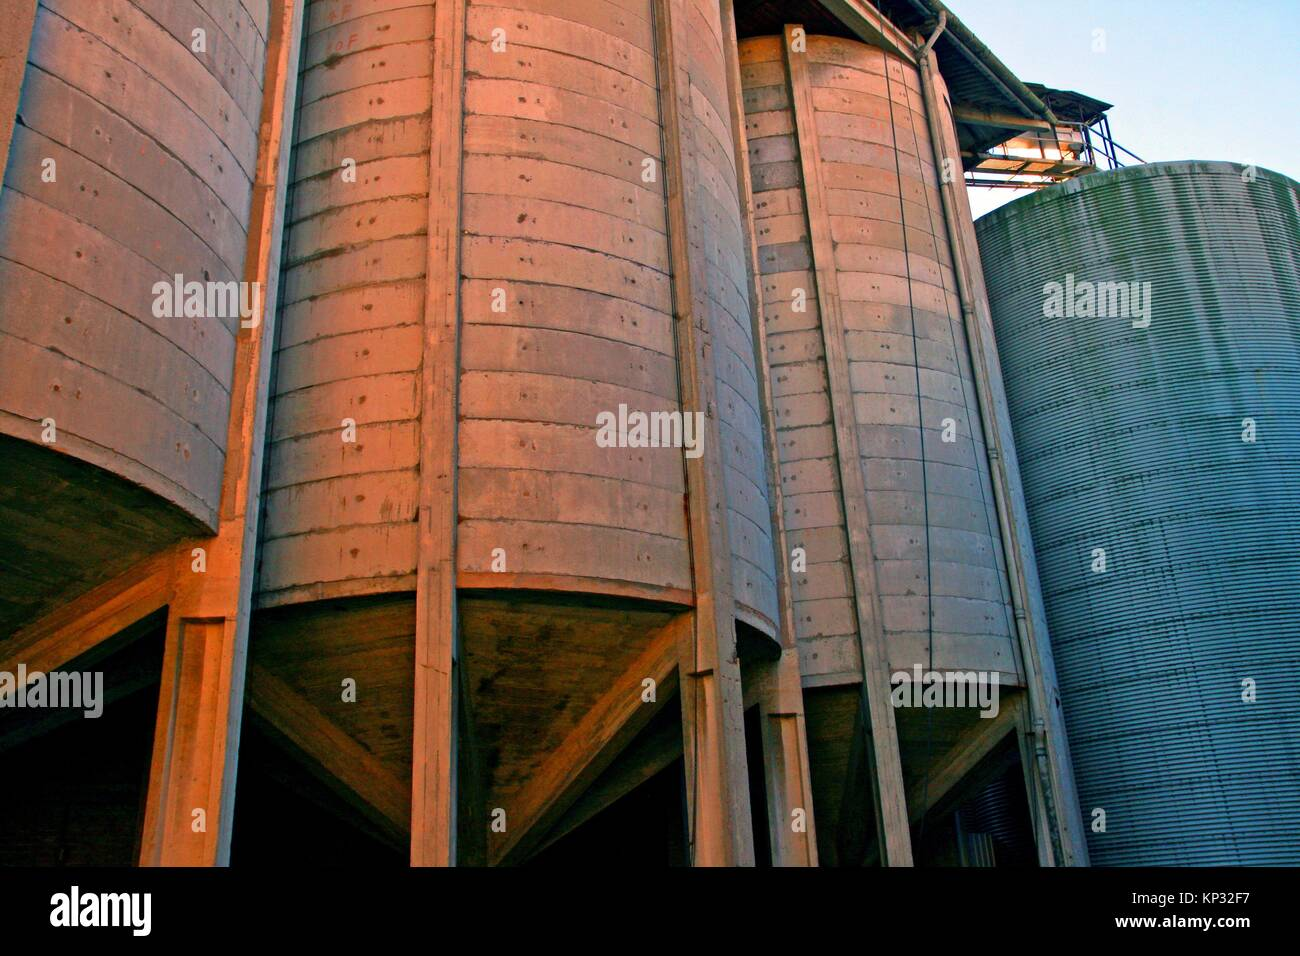 Agricultural silos, Vic, Catalonia, Spain - Stock Image